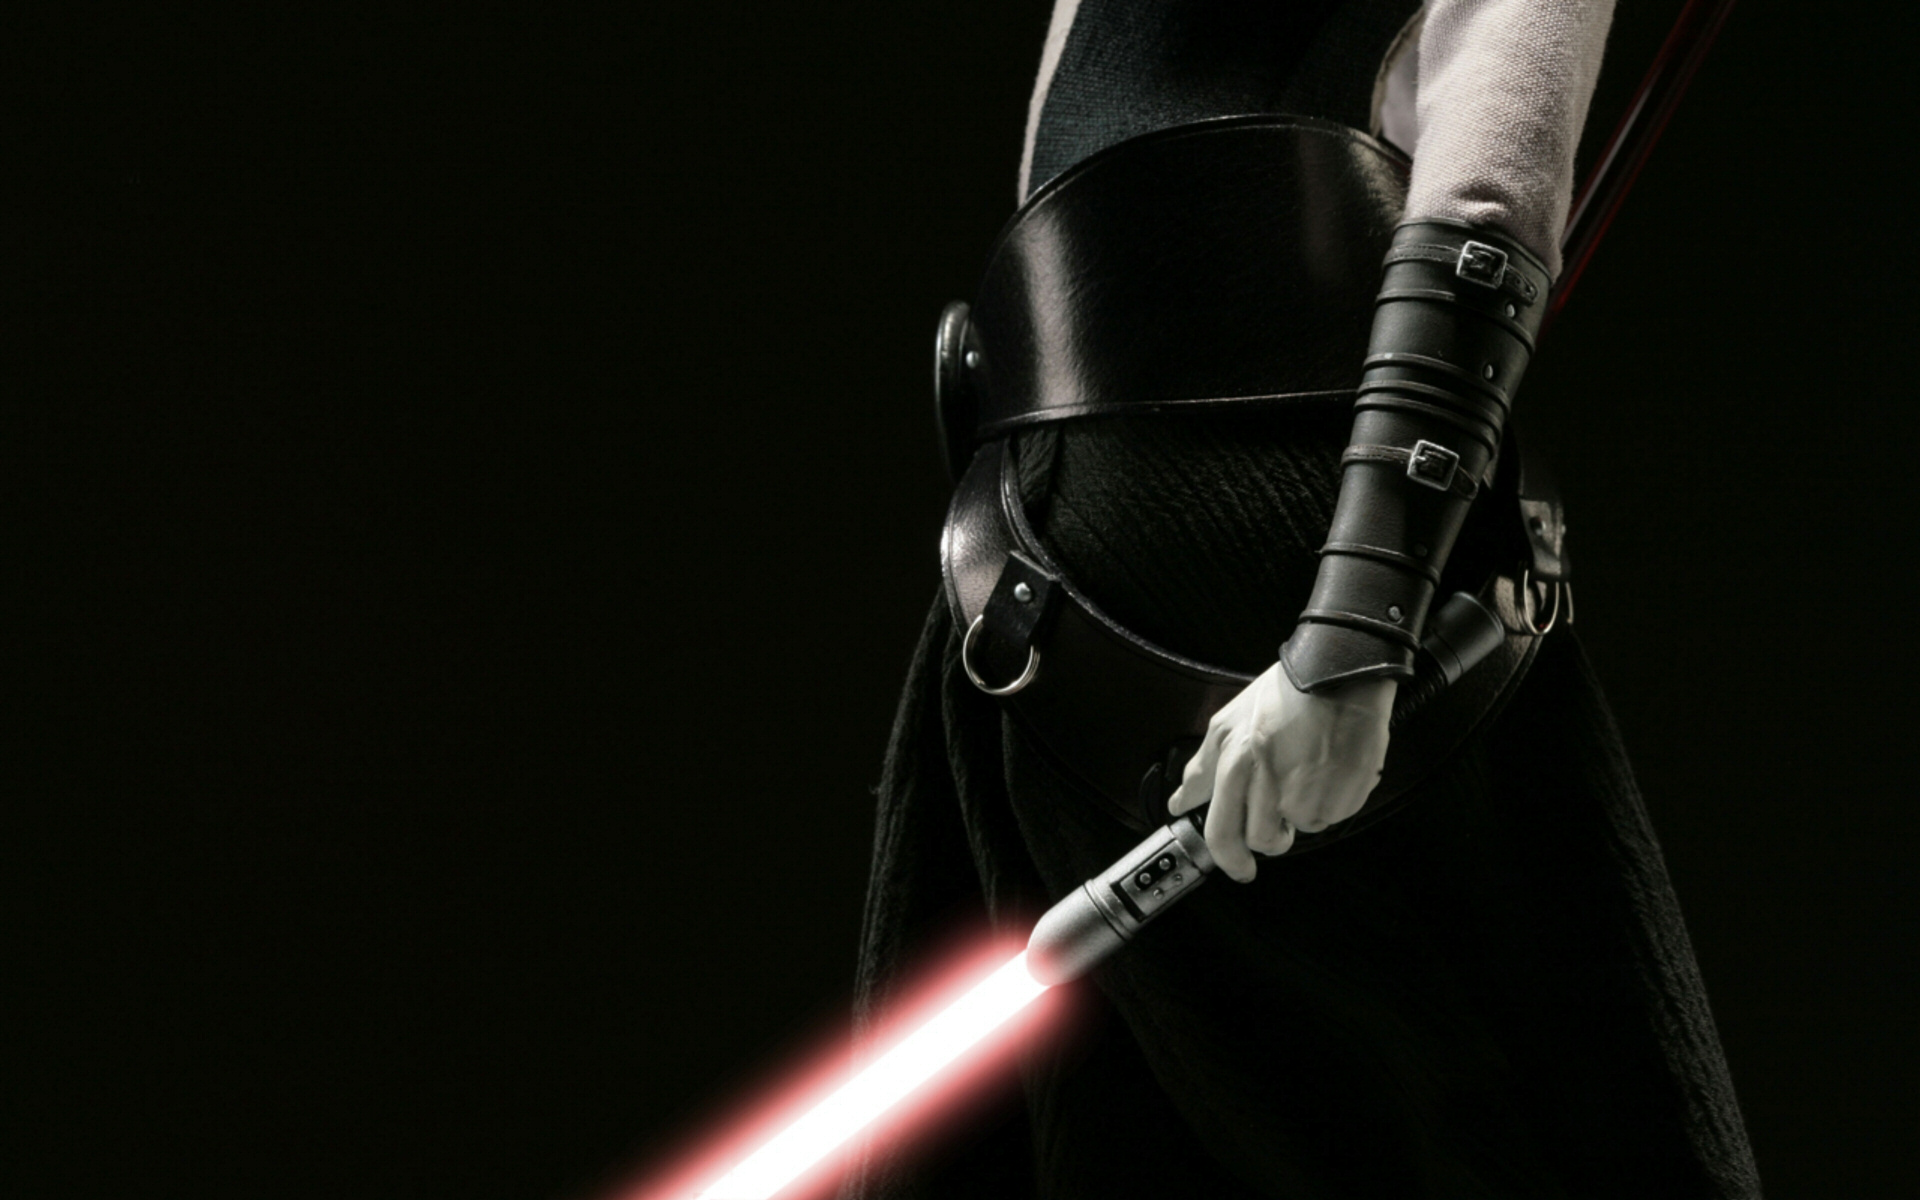 Wallpaper Sith Lord iPhone Wallpaper Sith Lord Android Wallpaper 1920x1200